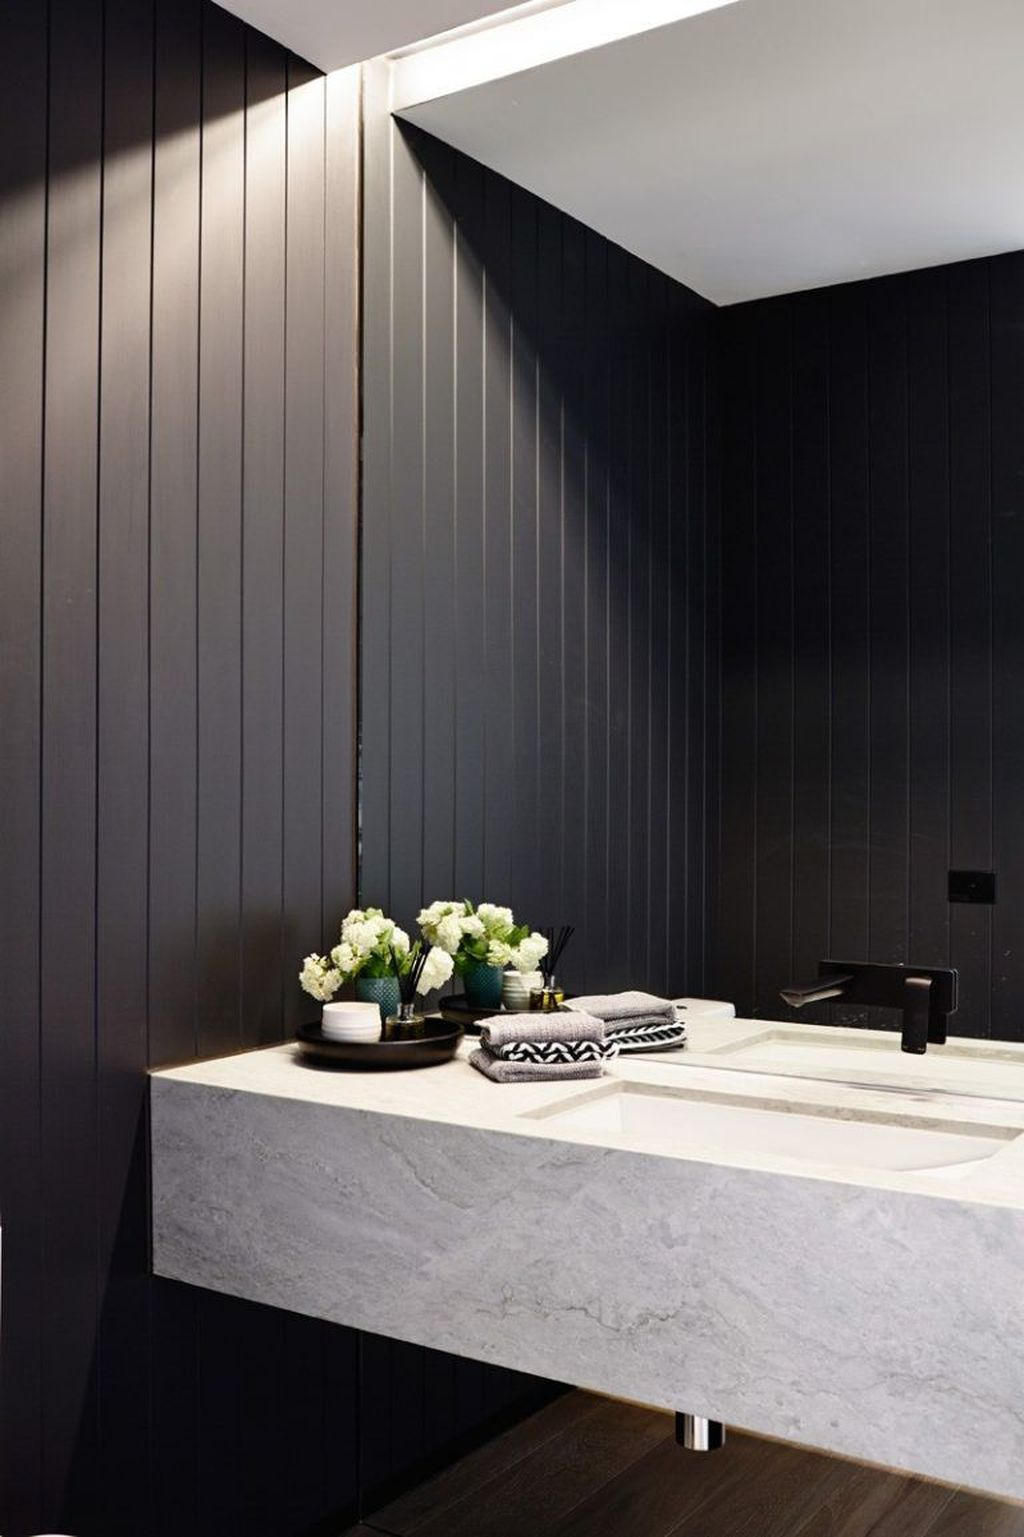 Inspiring Black Powder Room Design Ideas With Modern Style 28